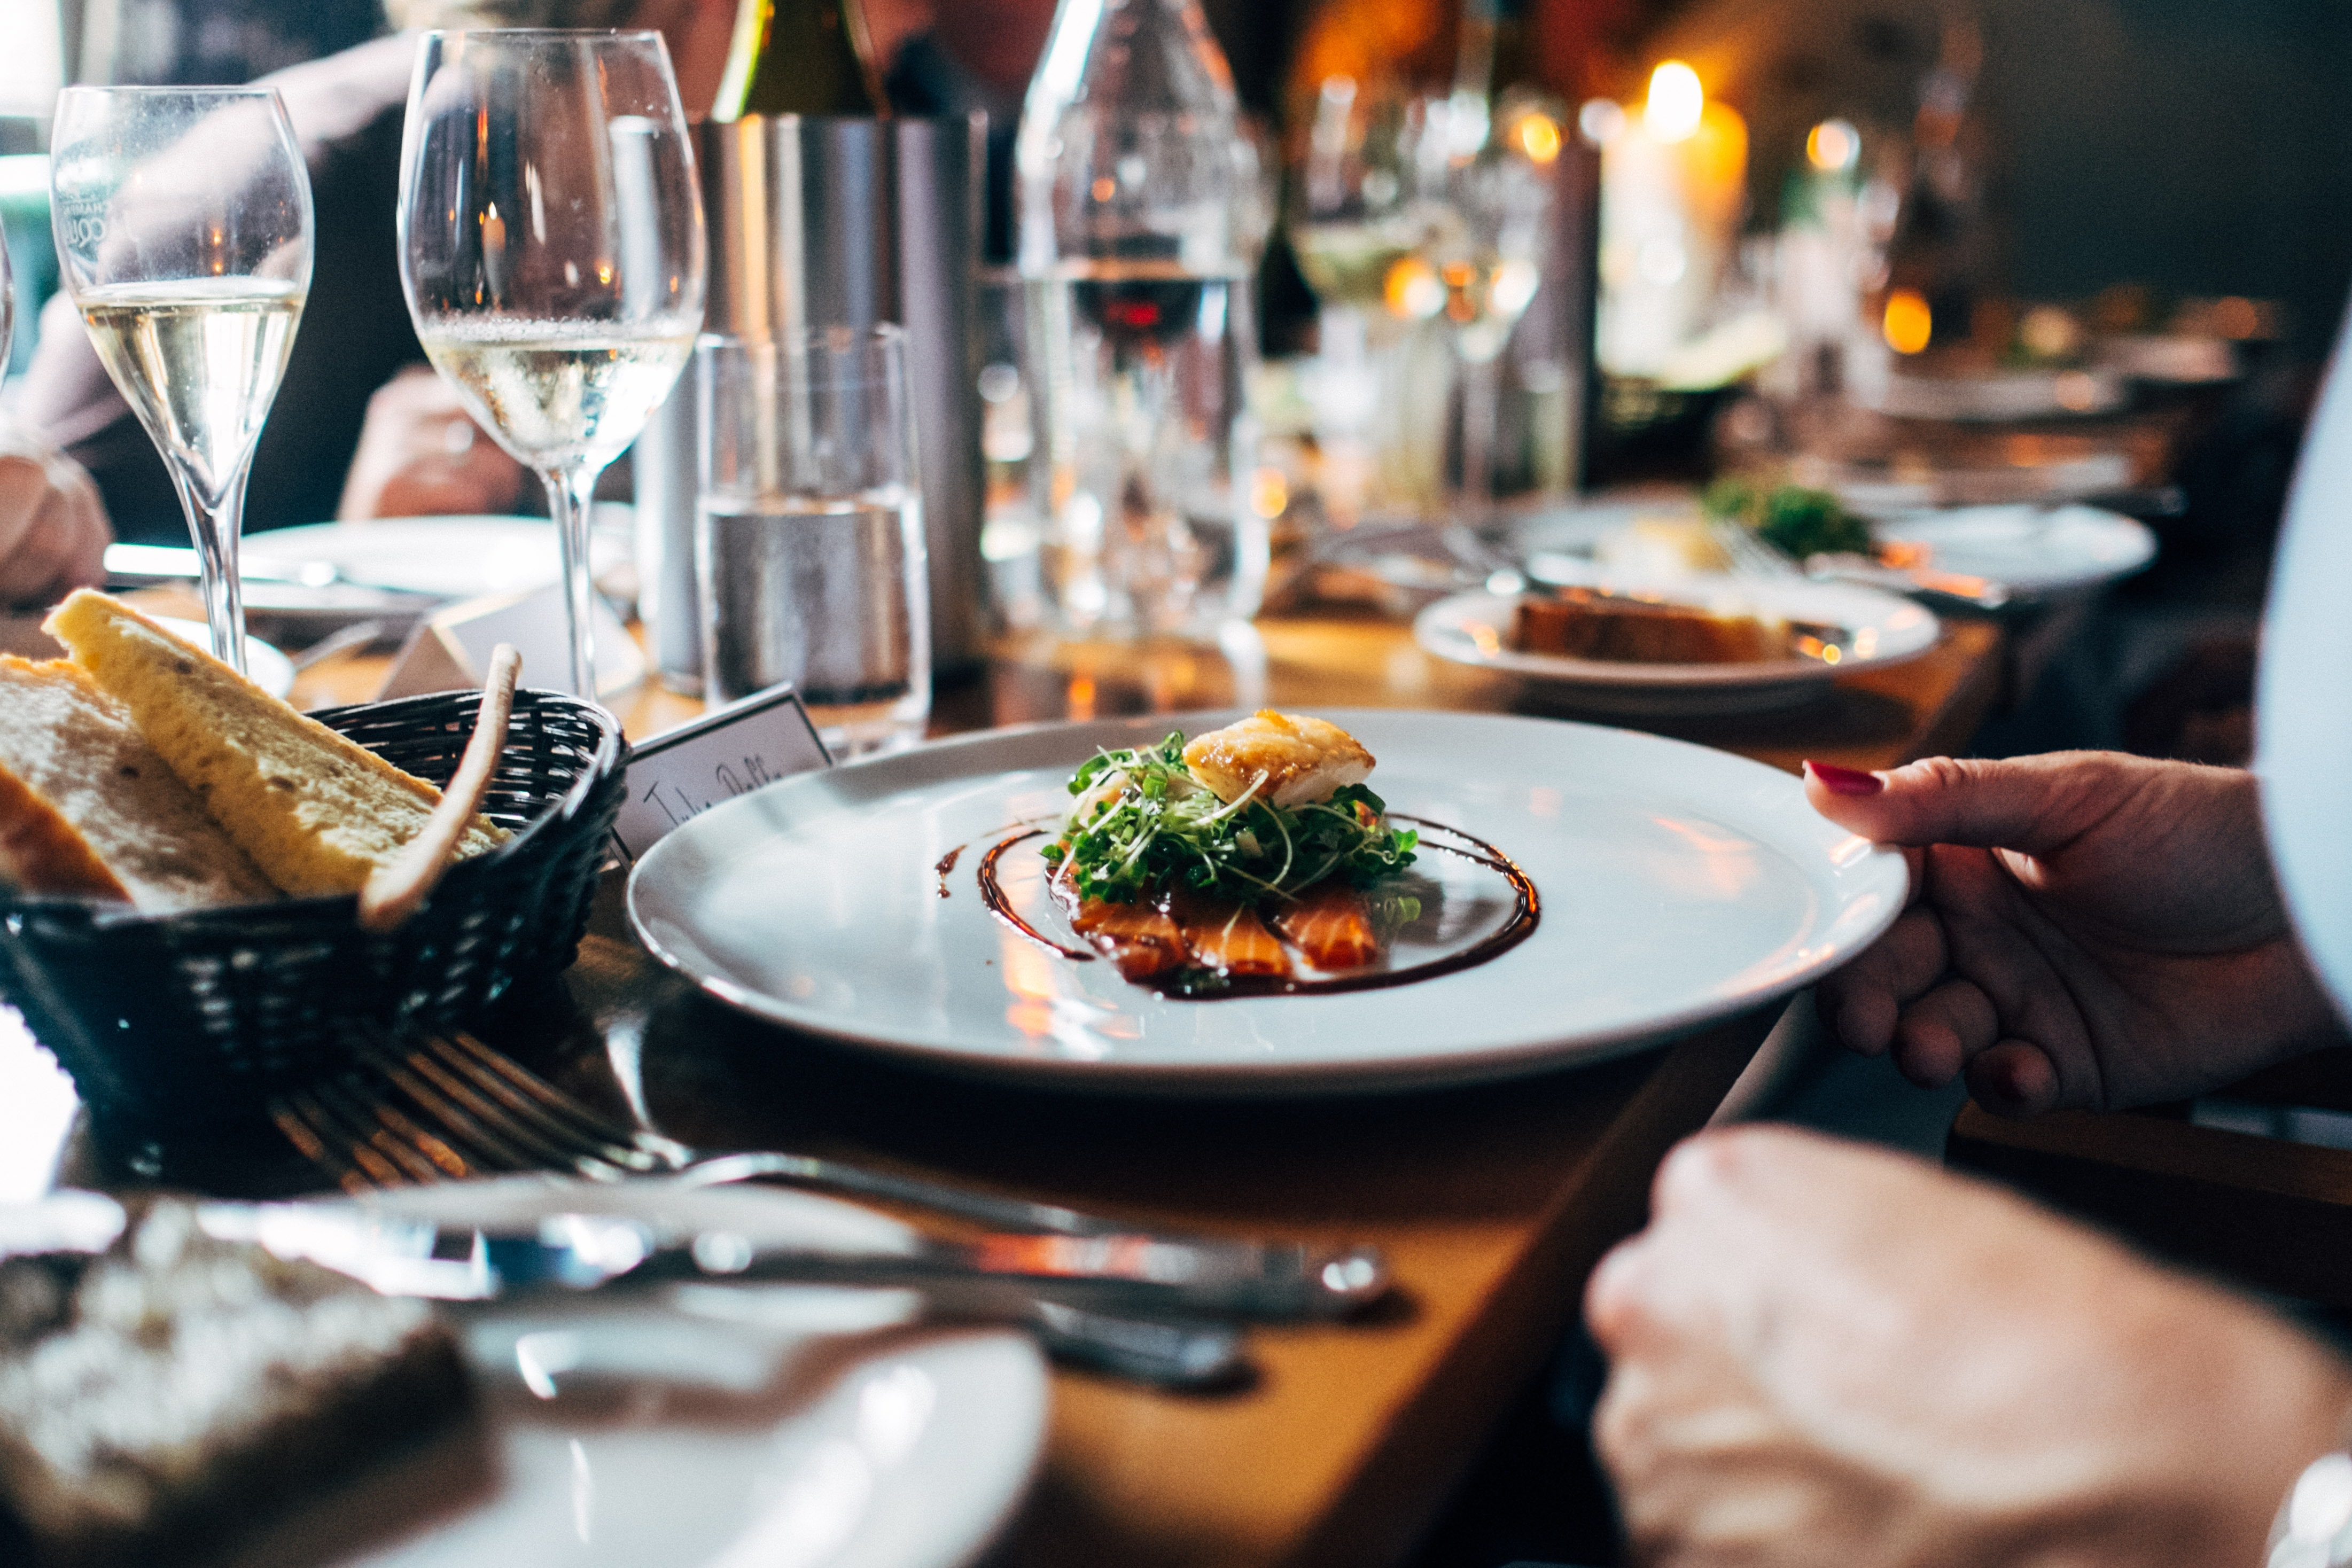 Gourmet, 10 Best Restaurants In Amsterdam To Visit For Great Food